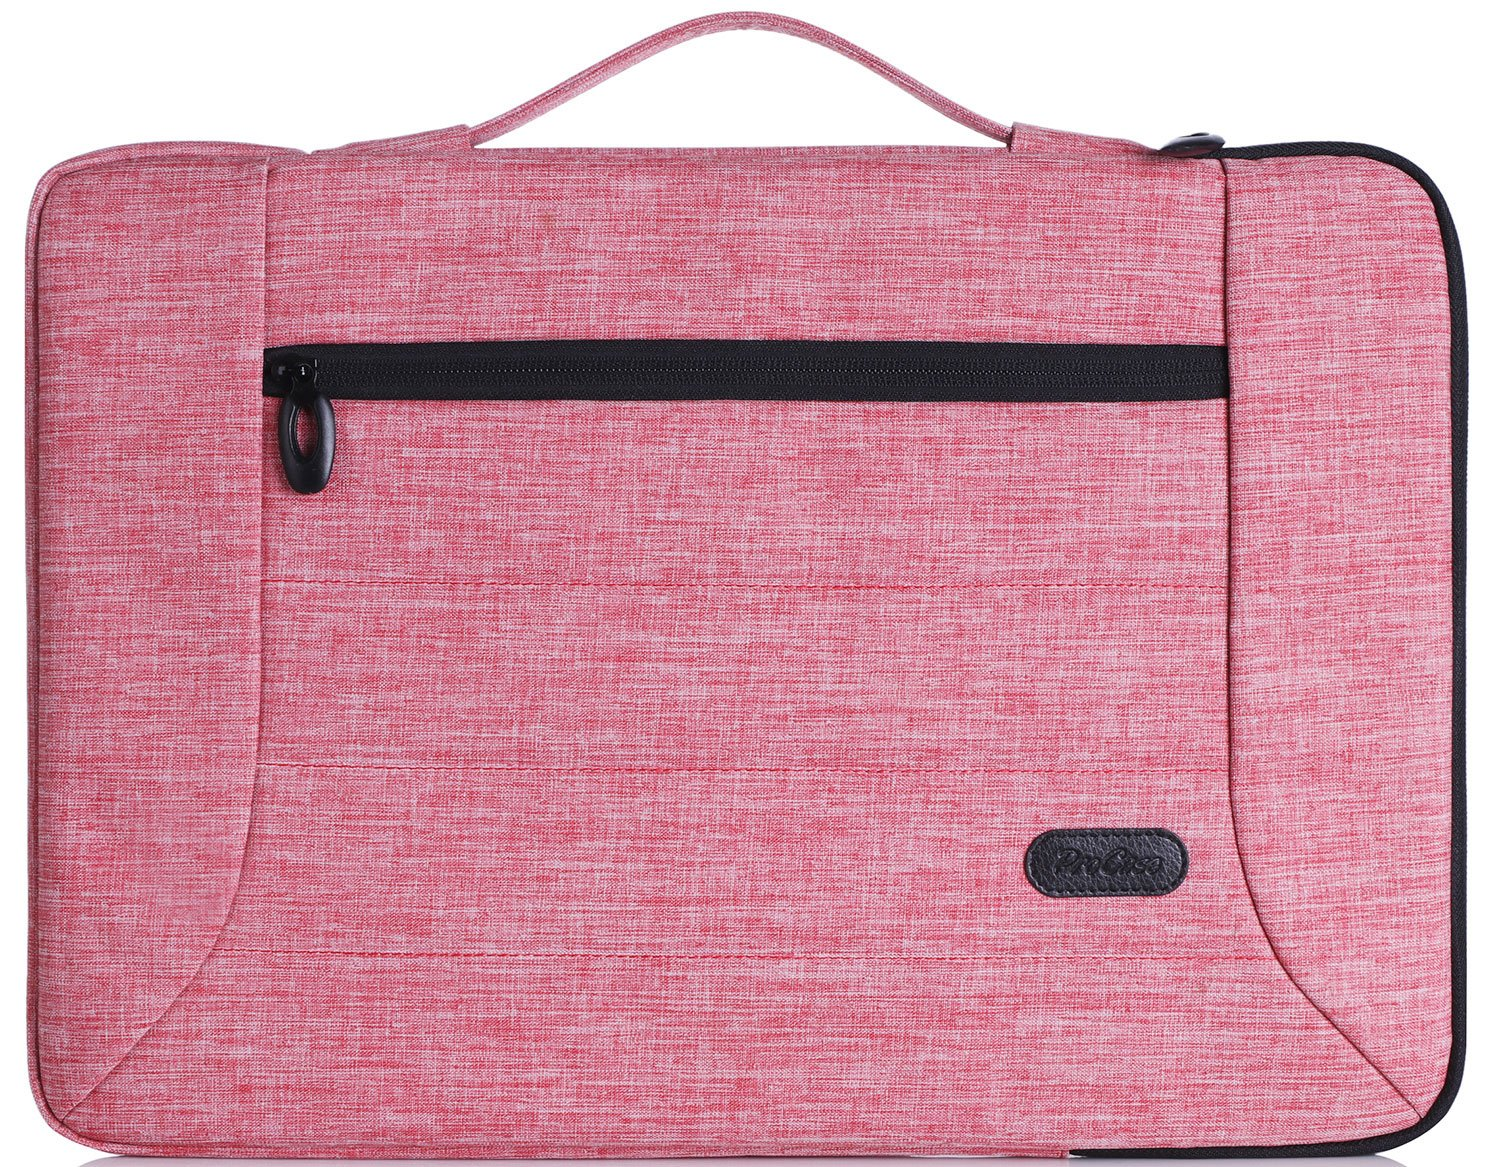 """Procase 13-13.5 Inch Laptop Sleeve Case Cover Bag for MacBook Pro Air, Surface Book, Most 12"""" 13"""" Laptop Ultrabook Notebook MacBook Chromebook -Pink"""